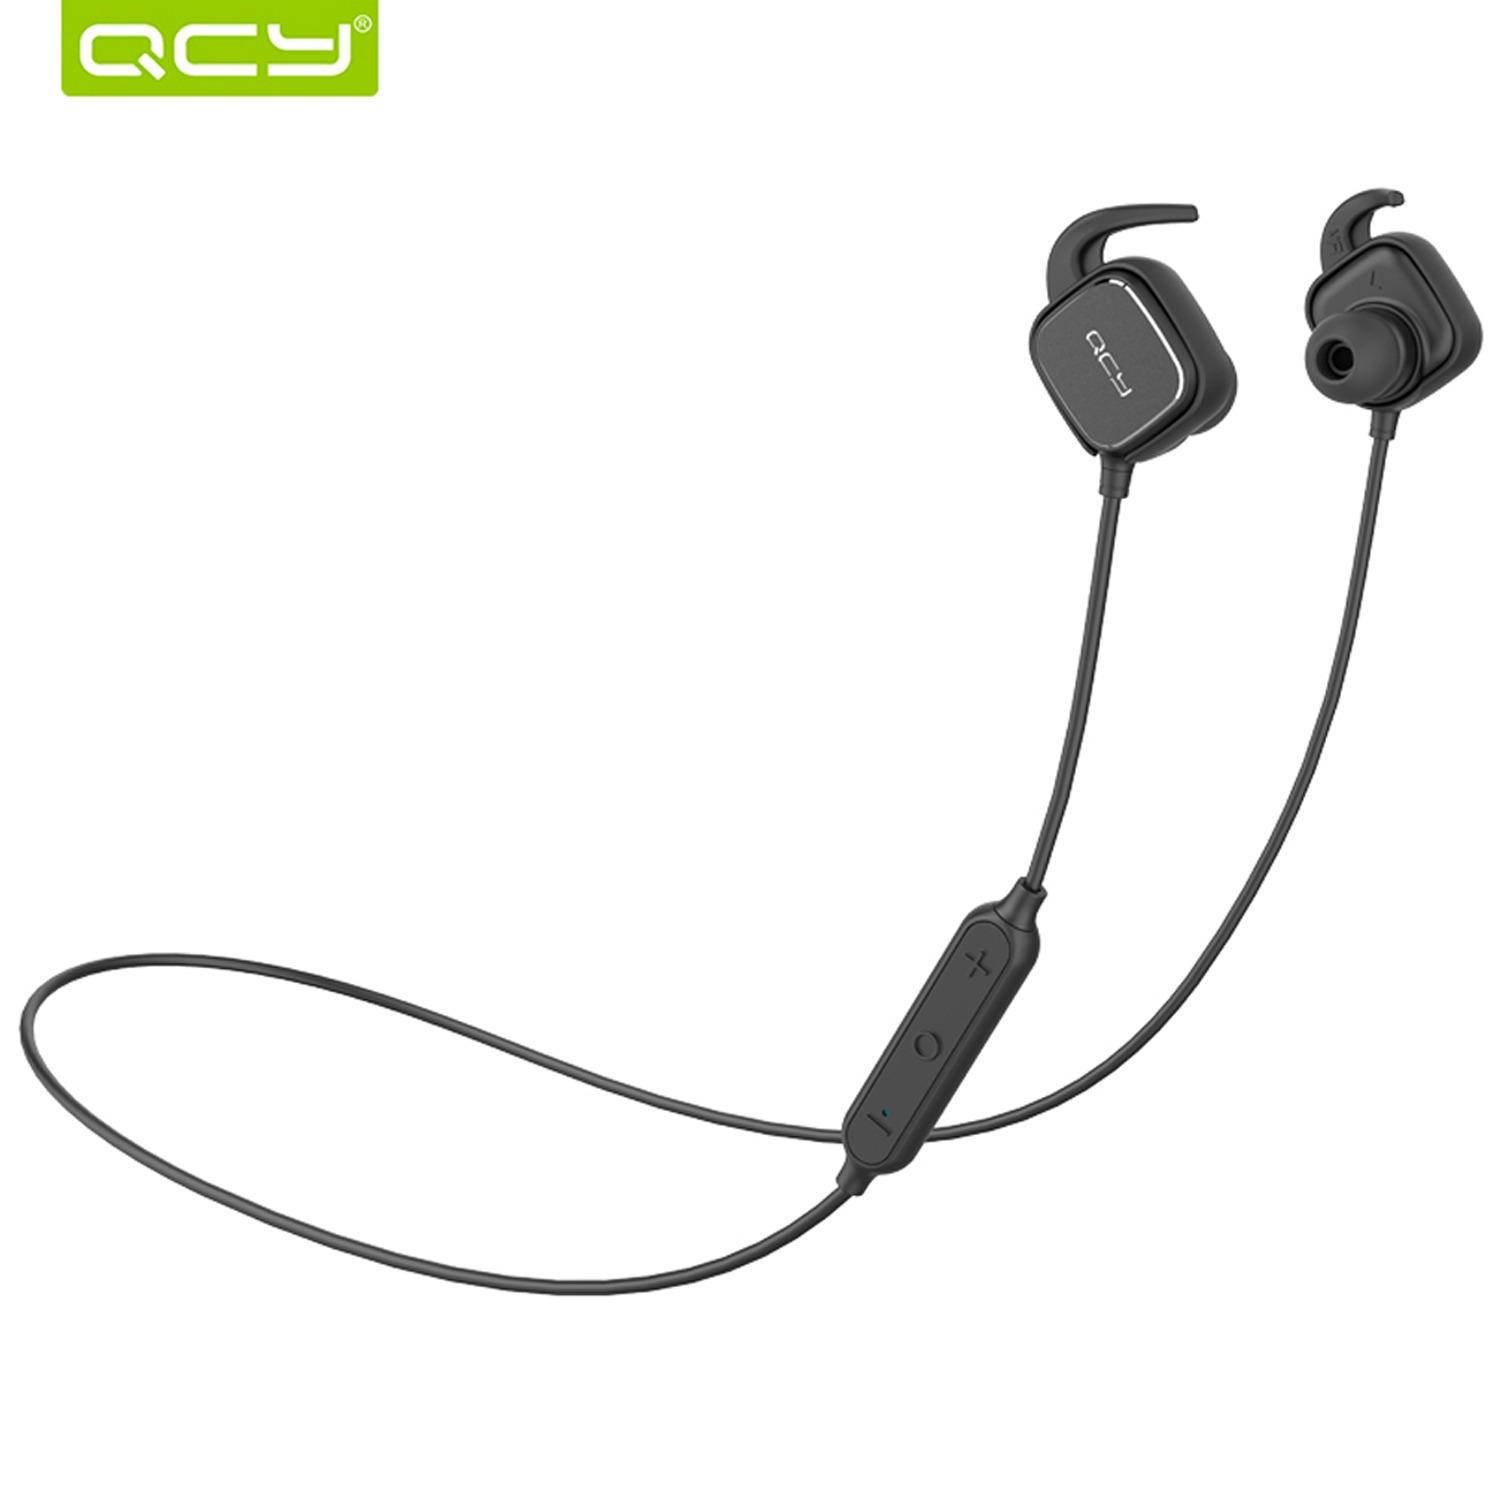 QCY QY12 Bluetooth Earphones Sport Wireless Earphones Magnet Switch Earbuds With Mic Noise Cancelling Earbud For Iphone Samsung Xiaomi Oppo Huawei Vivo Phone